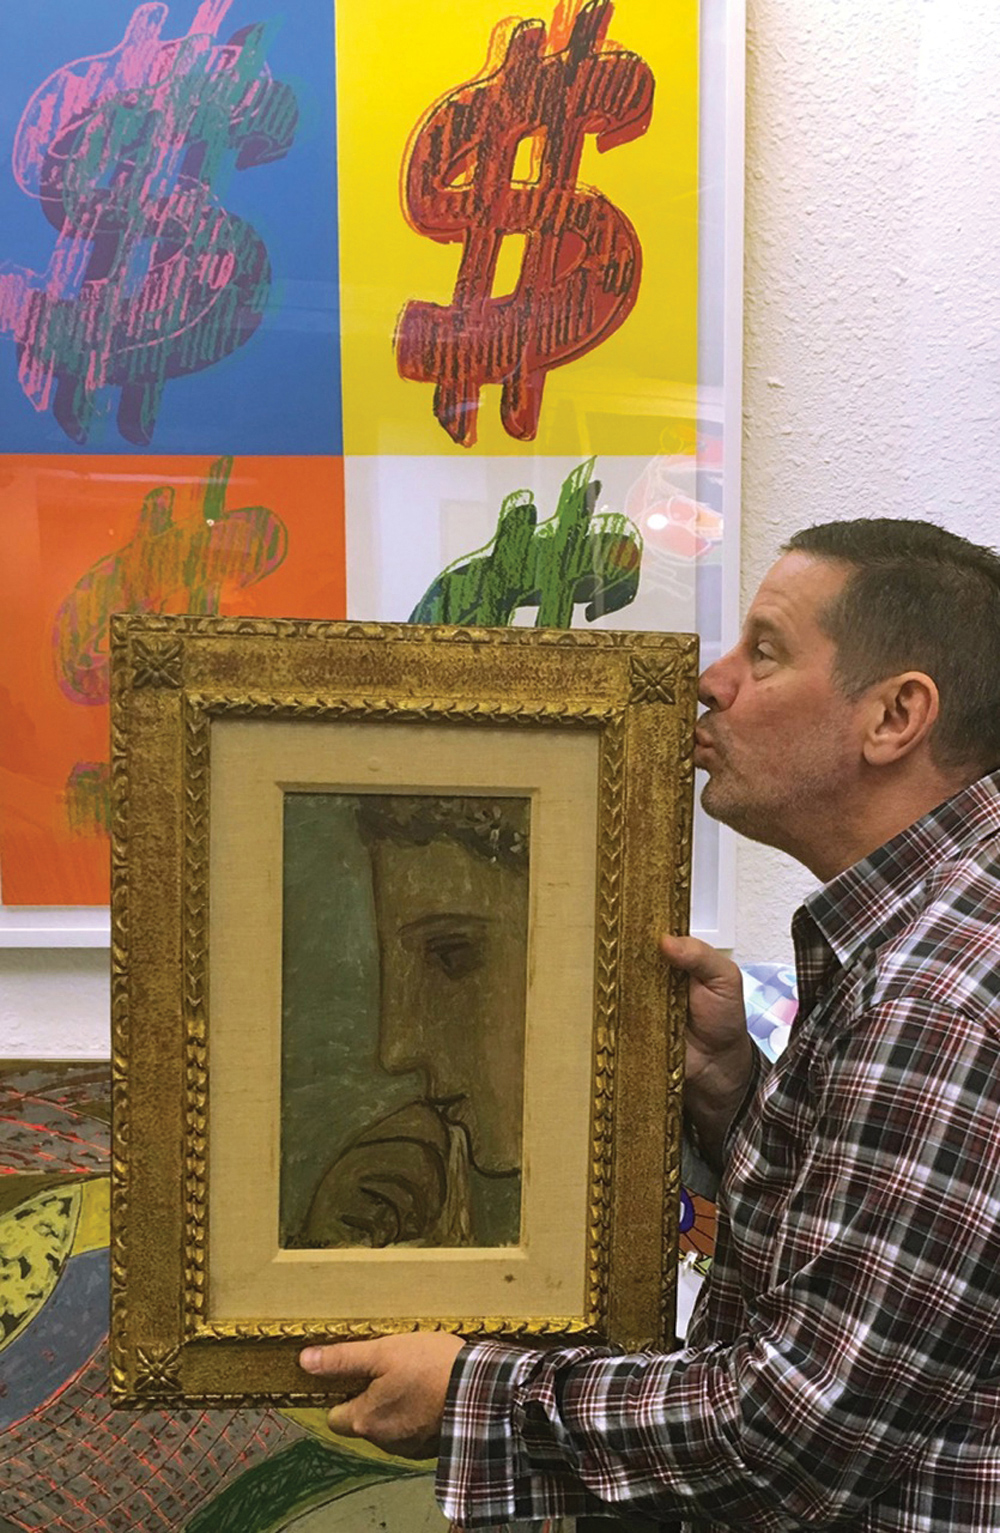 Ken Hendel of Gallery Art in Aventura kissing his Picasso. Courtesy of Ken Hendel.